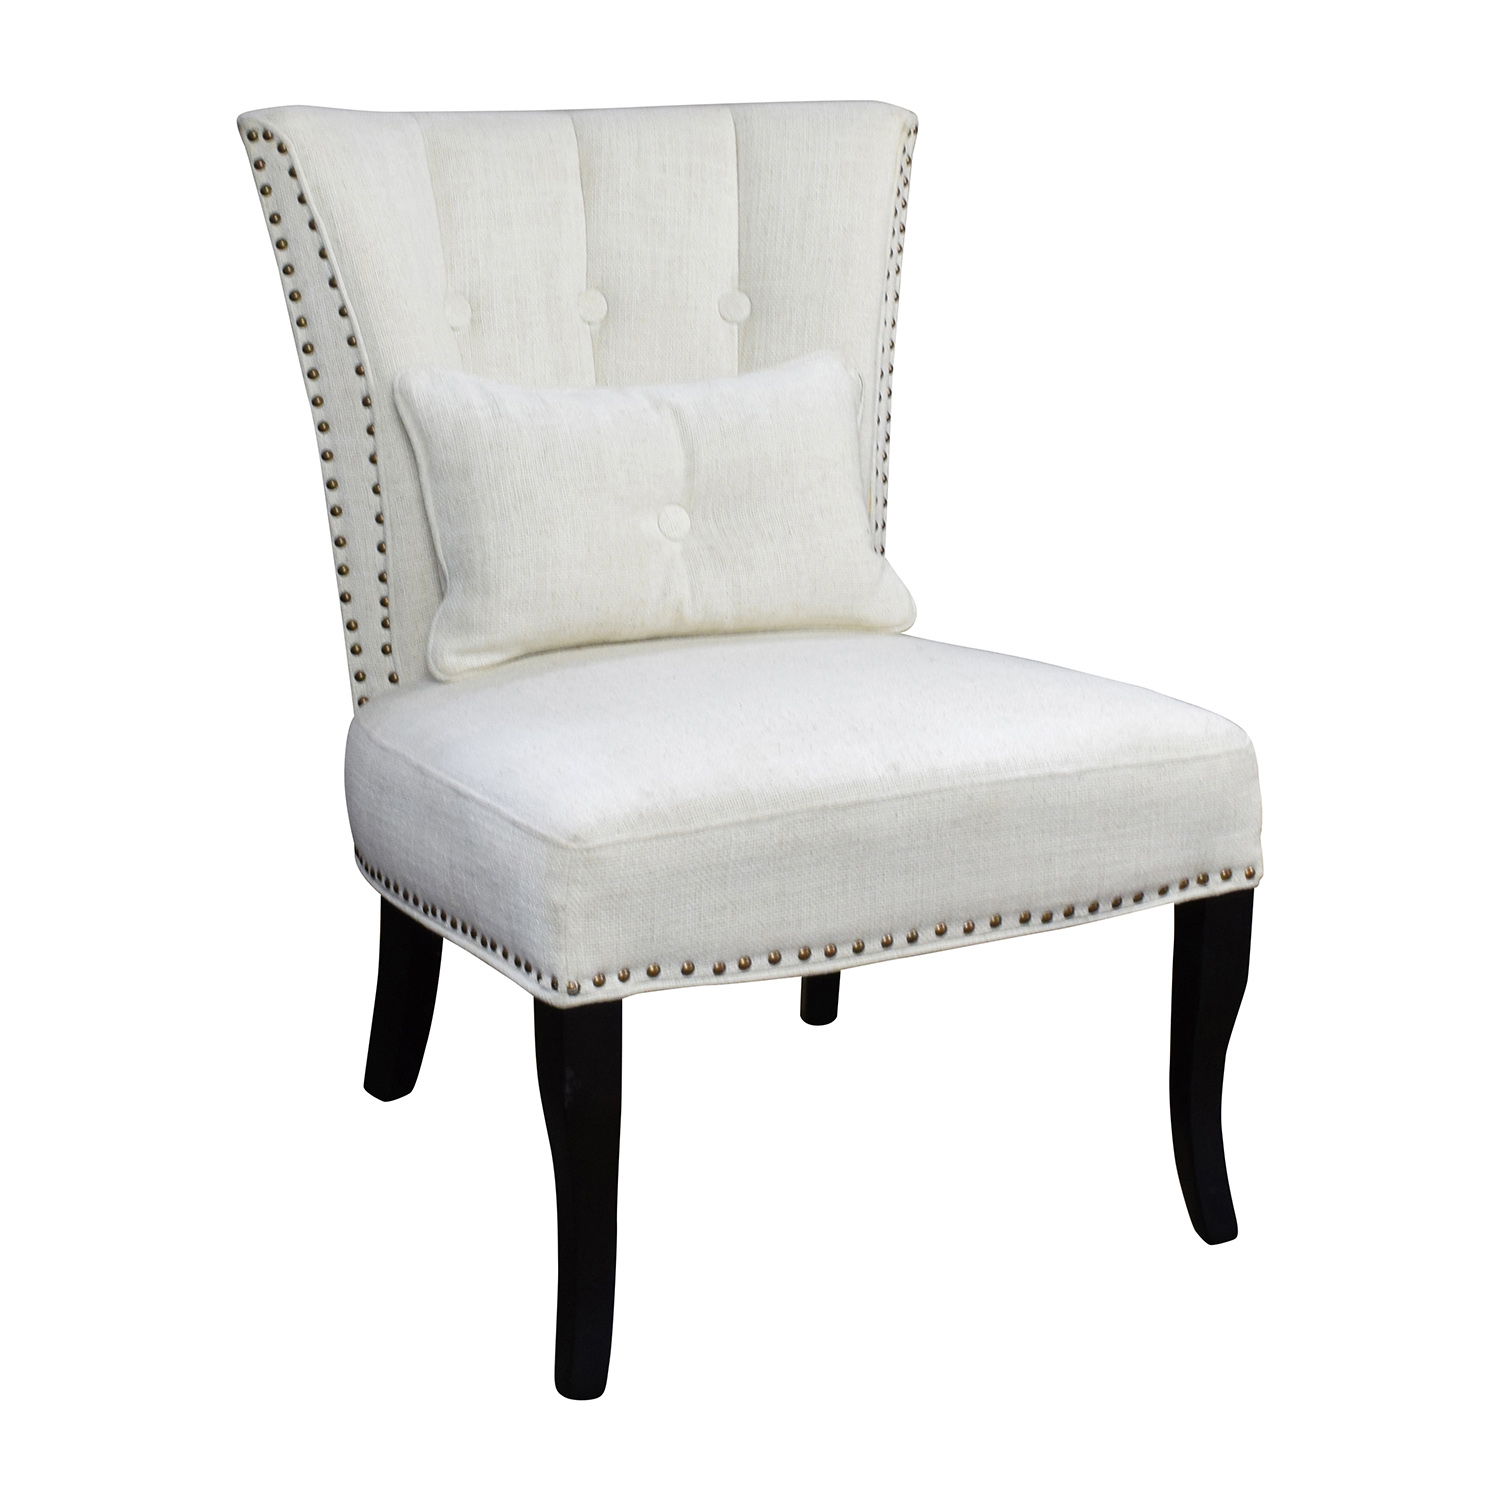 white tufted chairs wooden cushion chair 66 off unkown accent